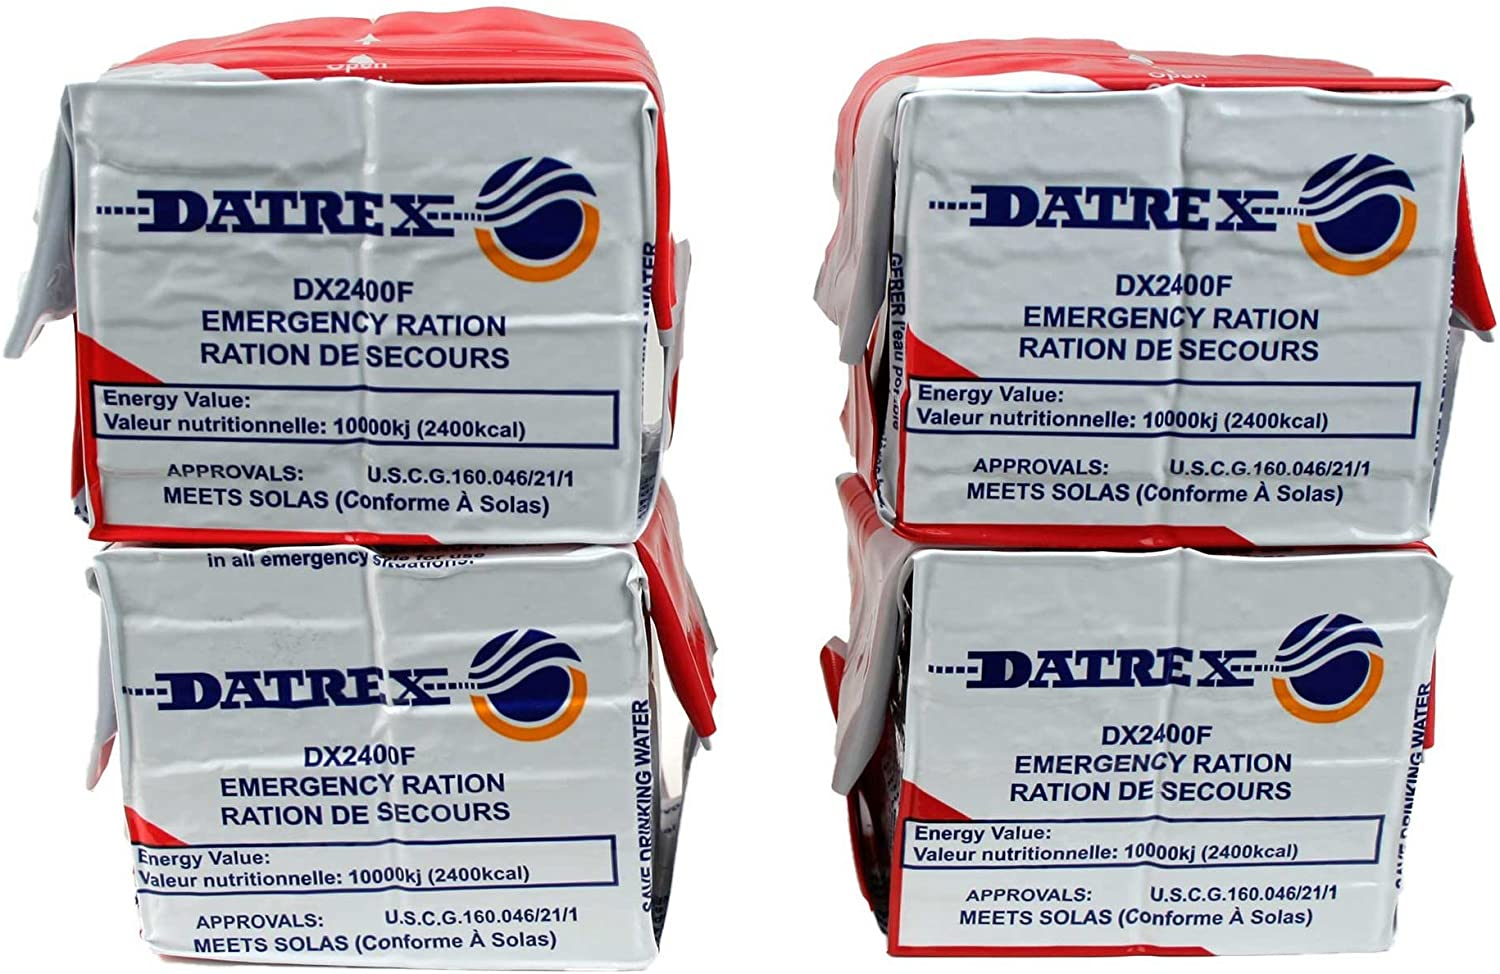 Datrex Emergency Survival 2400 Calorie Food Ration Bars (Pack of 10), 120 Bars